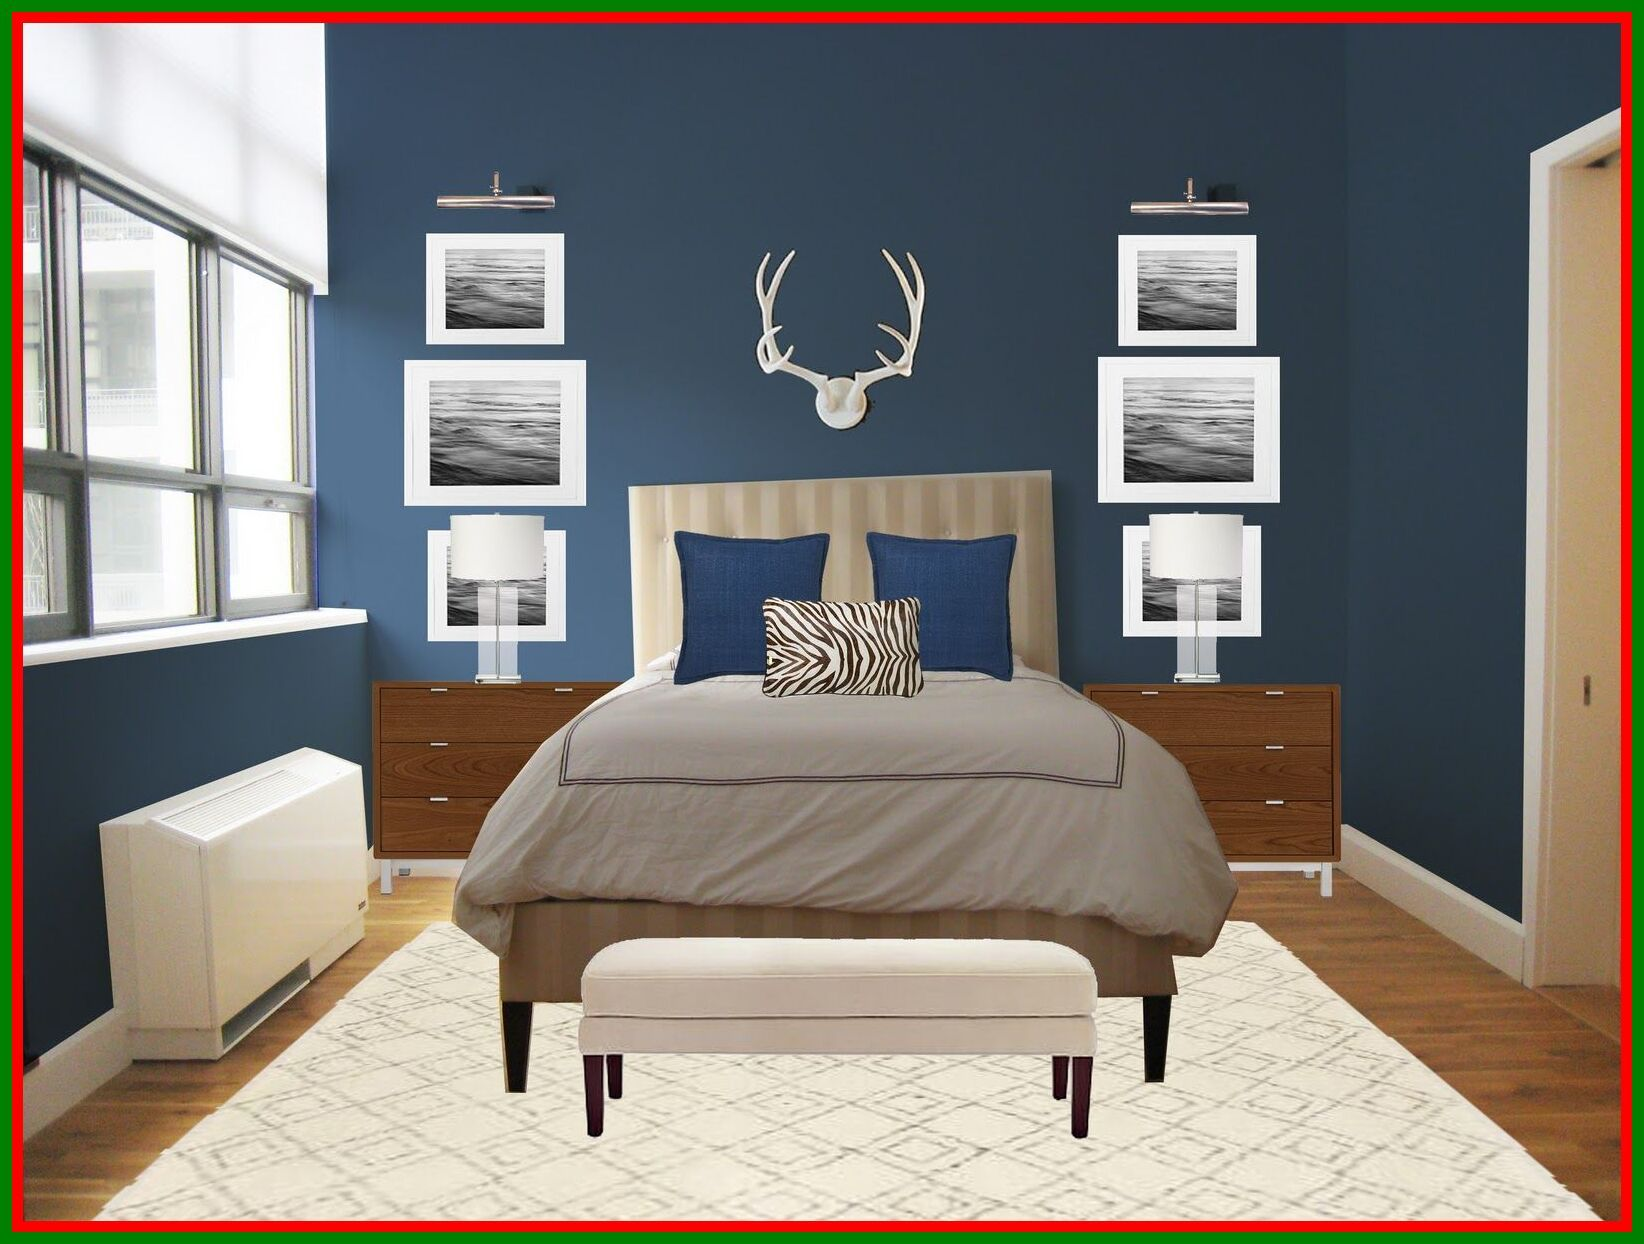 86 Reference Of Boys Room Paint Colors Inspiration In 2020 Boy Room Color Scheme Boys Room Colors Boys Room Paint Colors